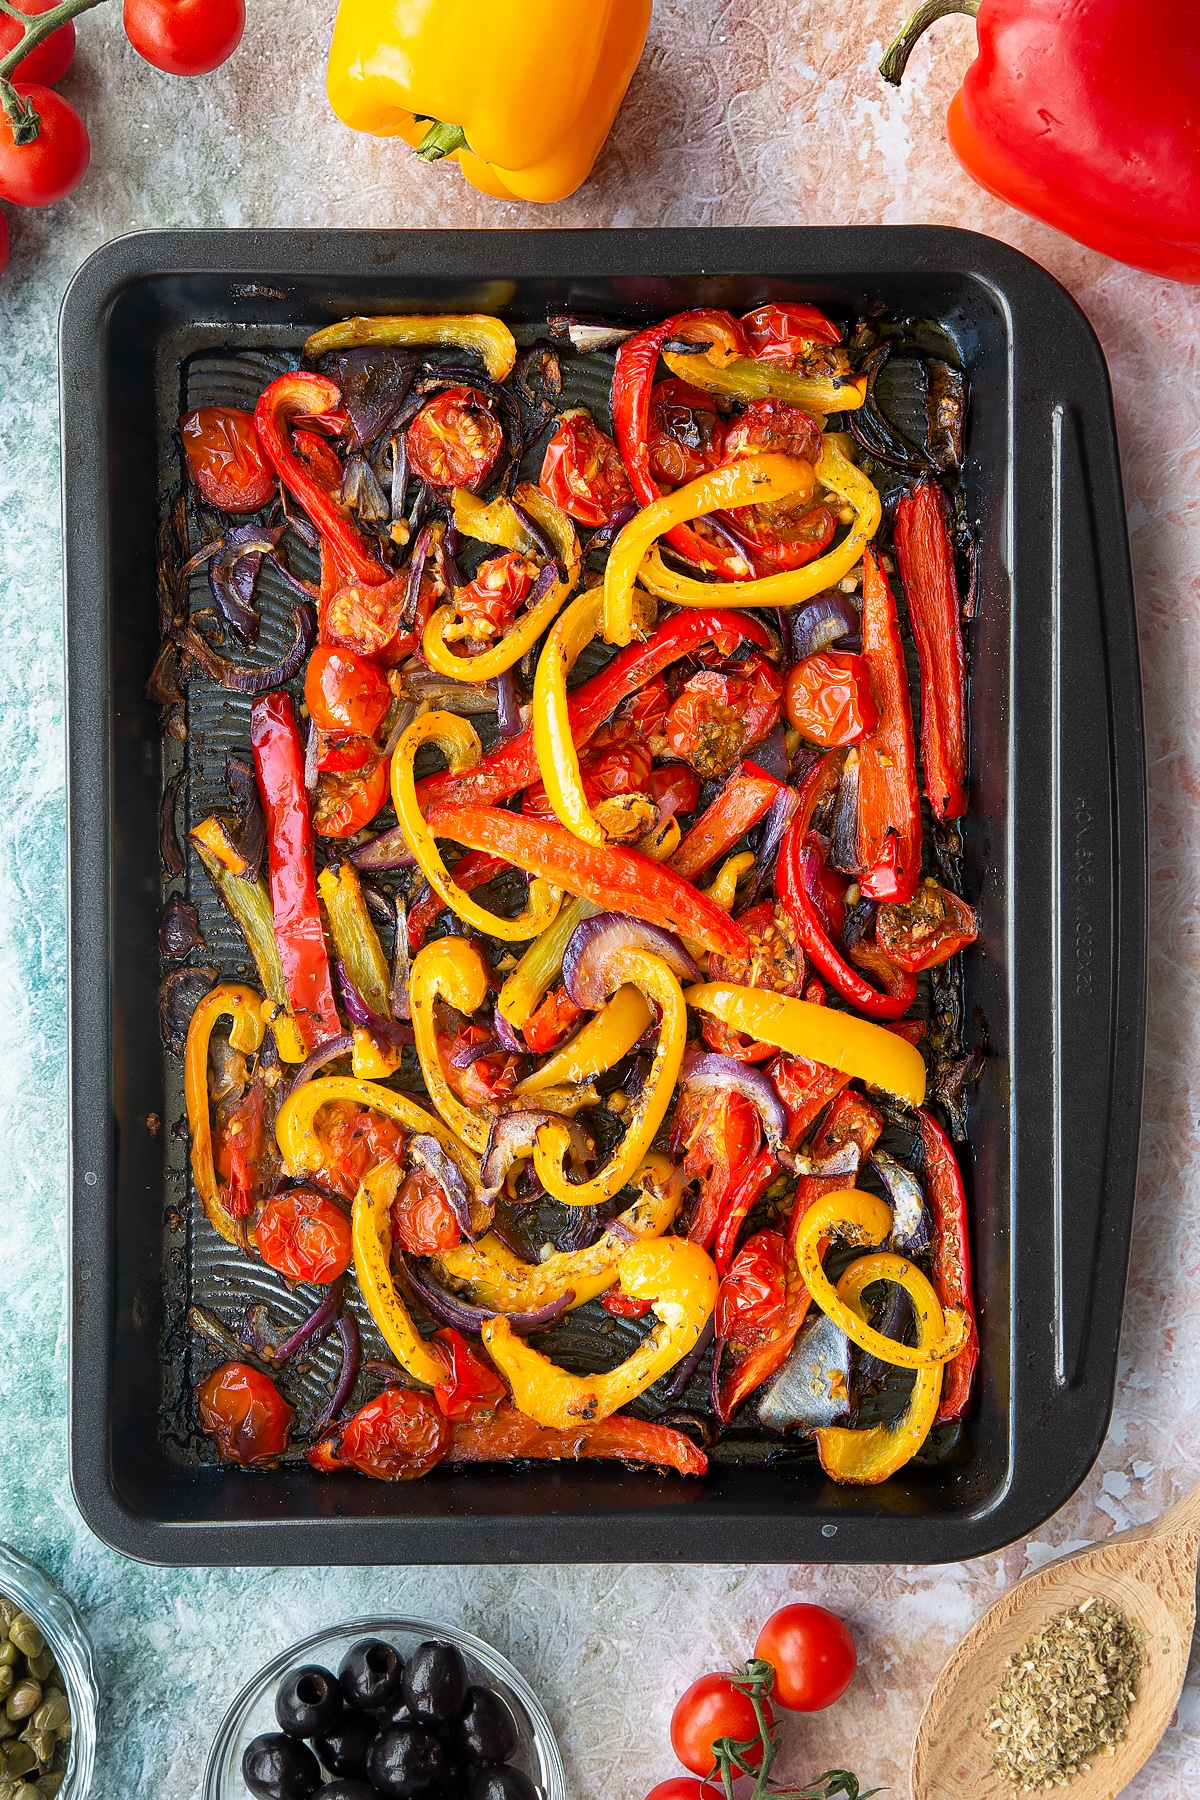 Roasted cherry tomatoes, peppers and onions in an oven tray. Ingredients to make vegan lentil salad surround the tray.